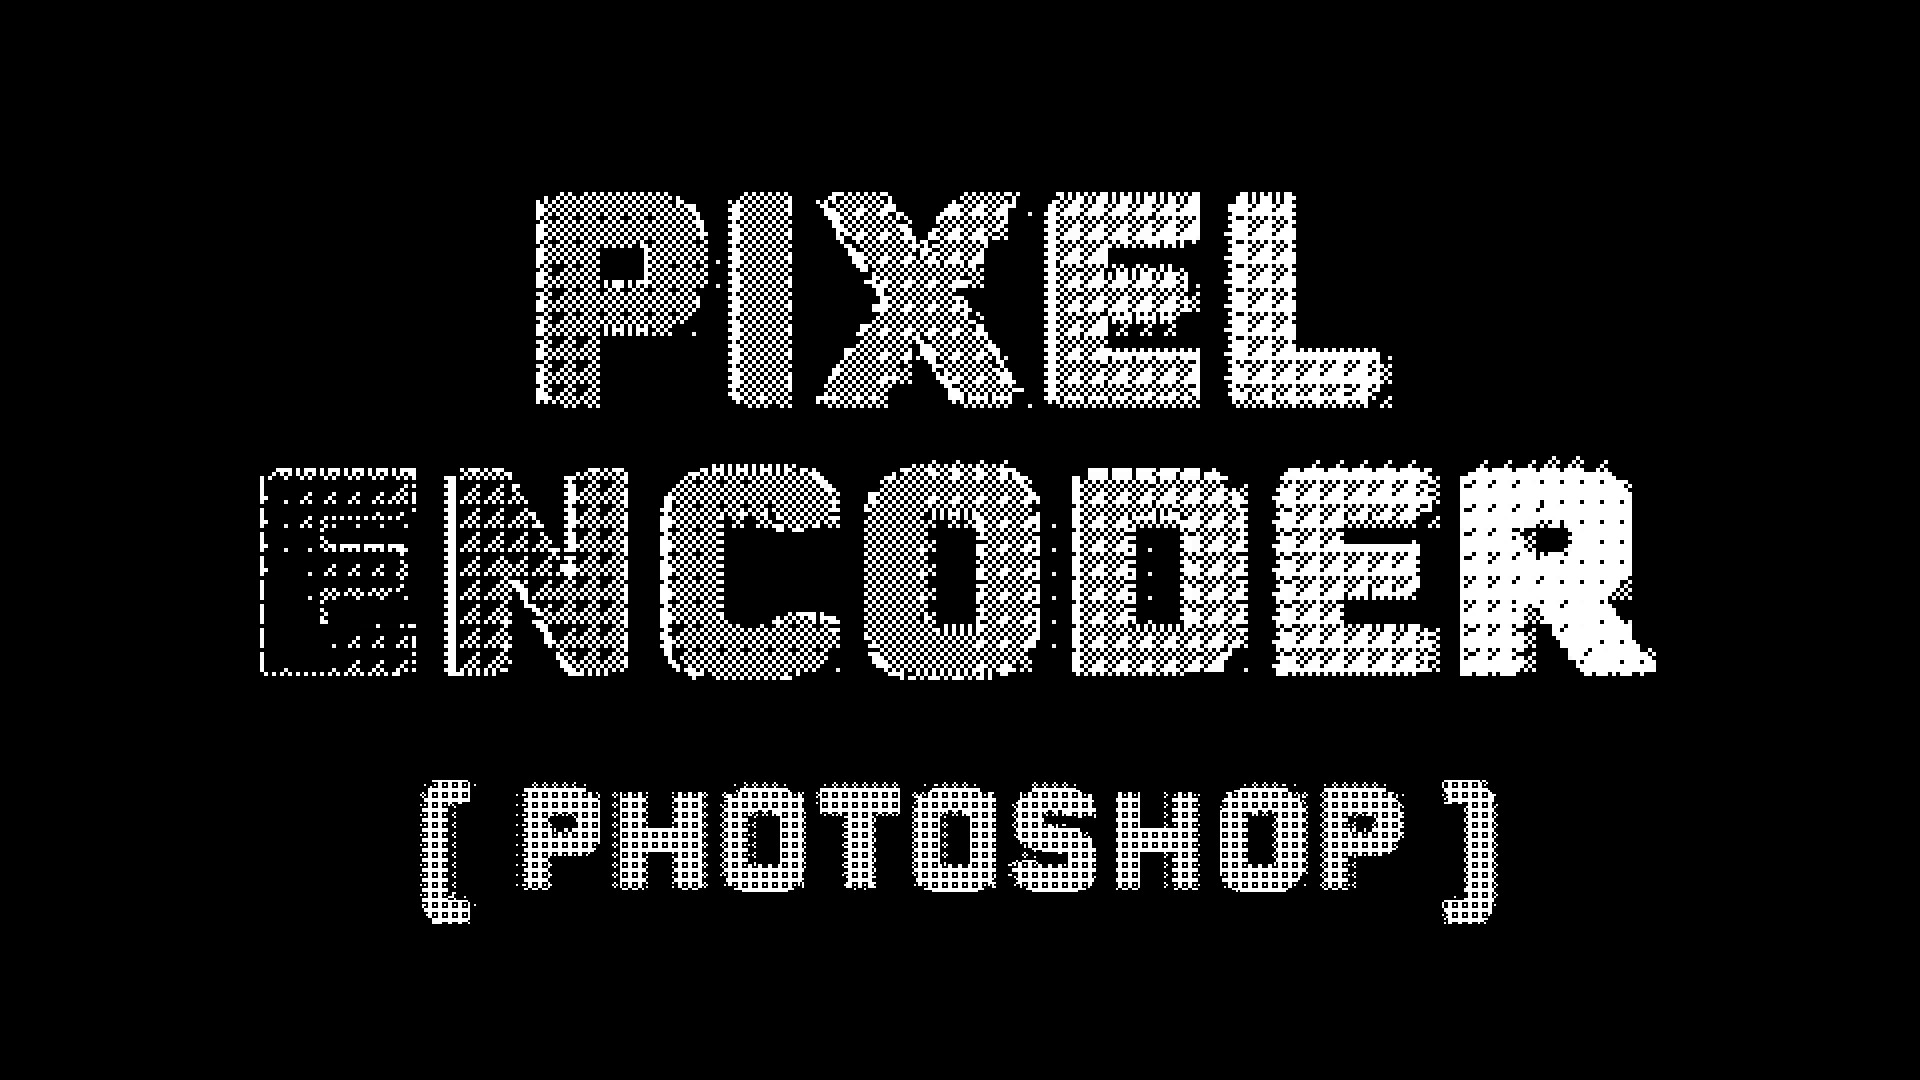 Pixel_Encoder - For Photoshop - Will Cecil